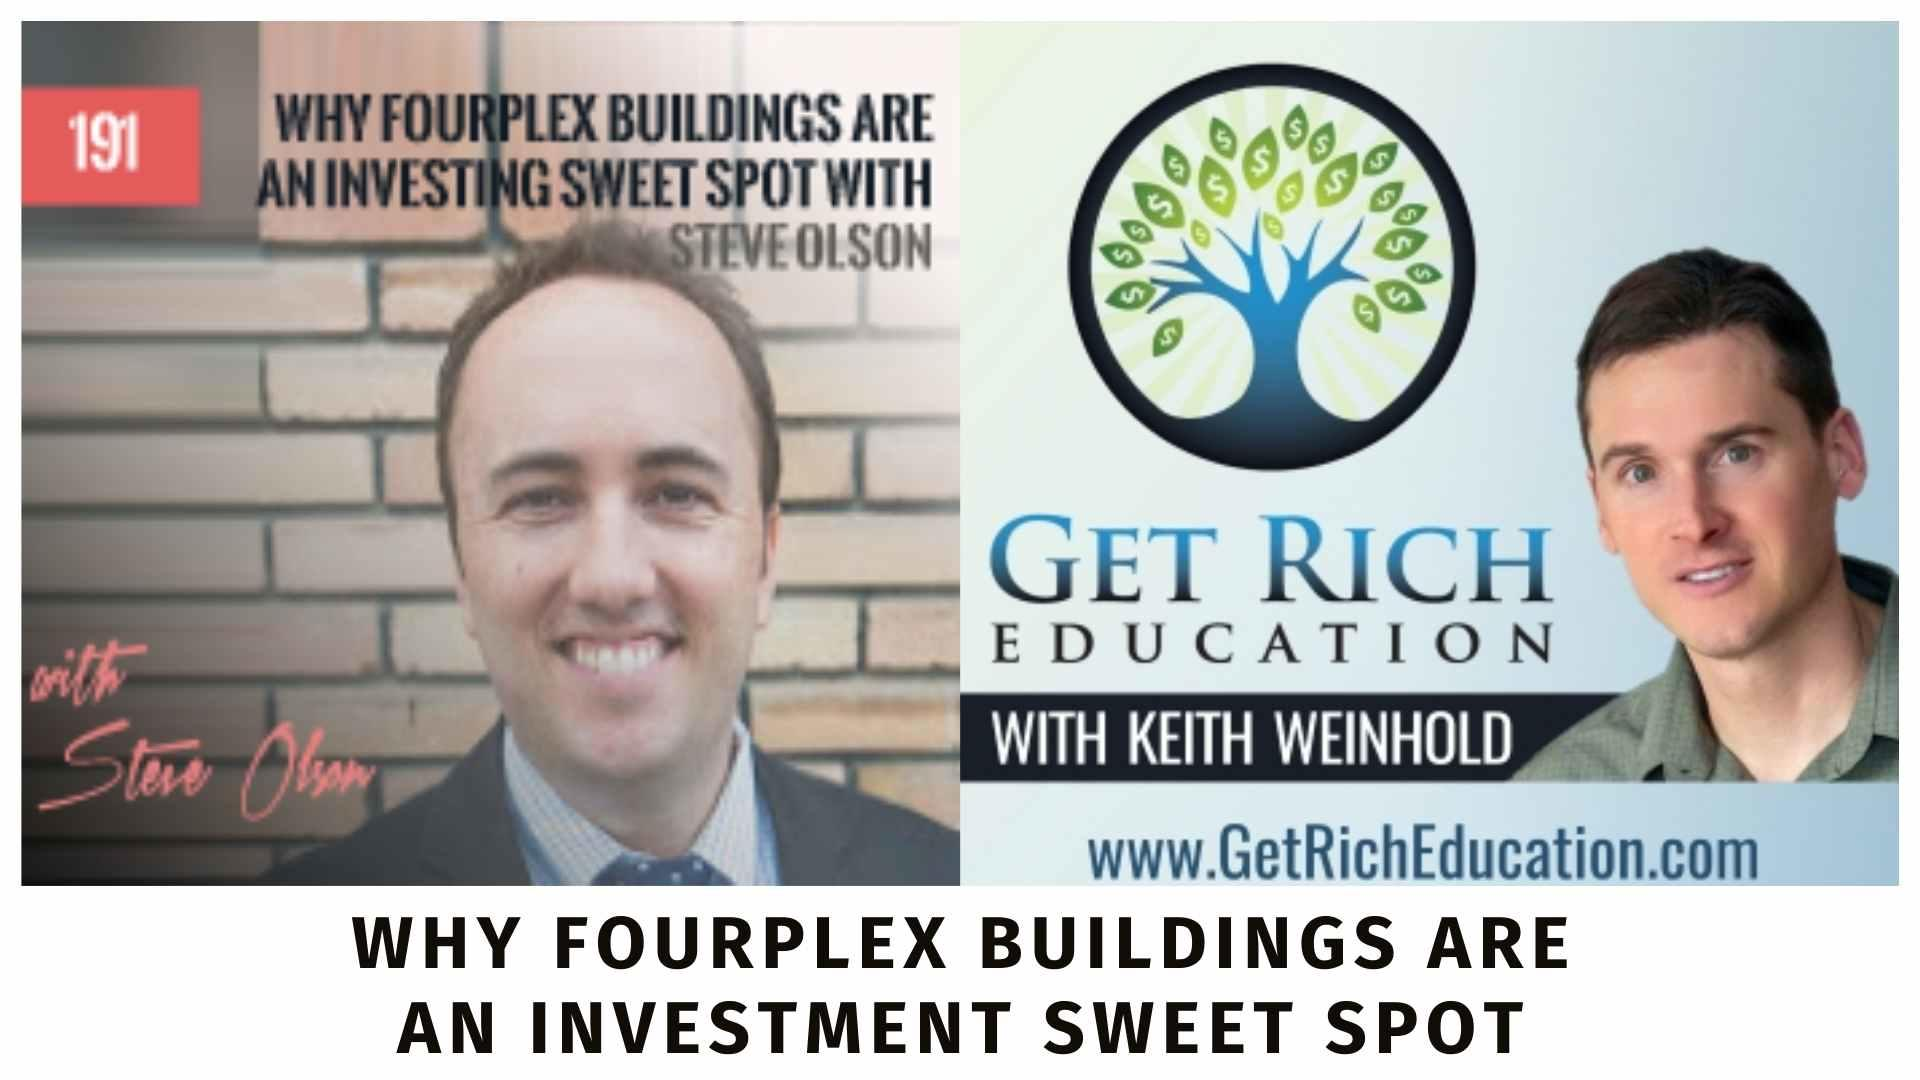 Why Fourplex Buildings Are An Investing Sweet Spot with Steve Olson